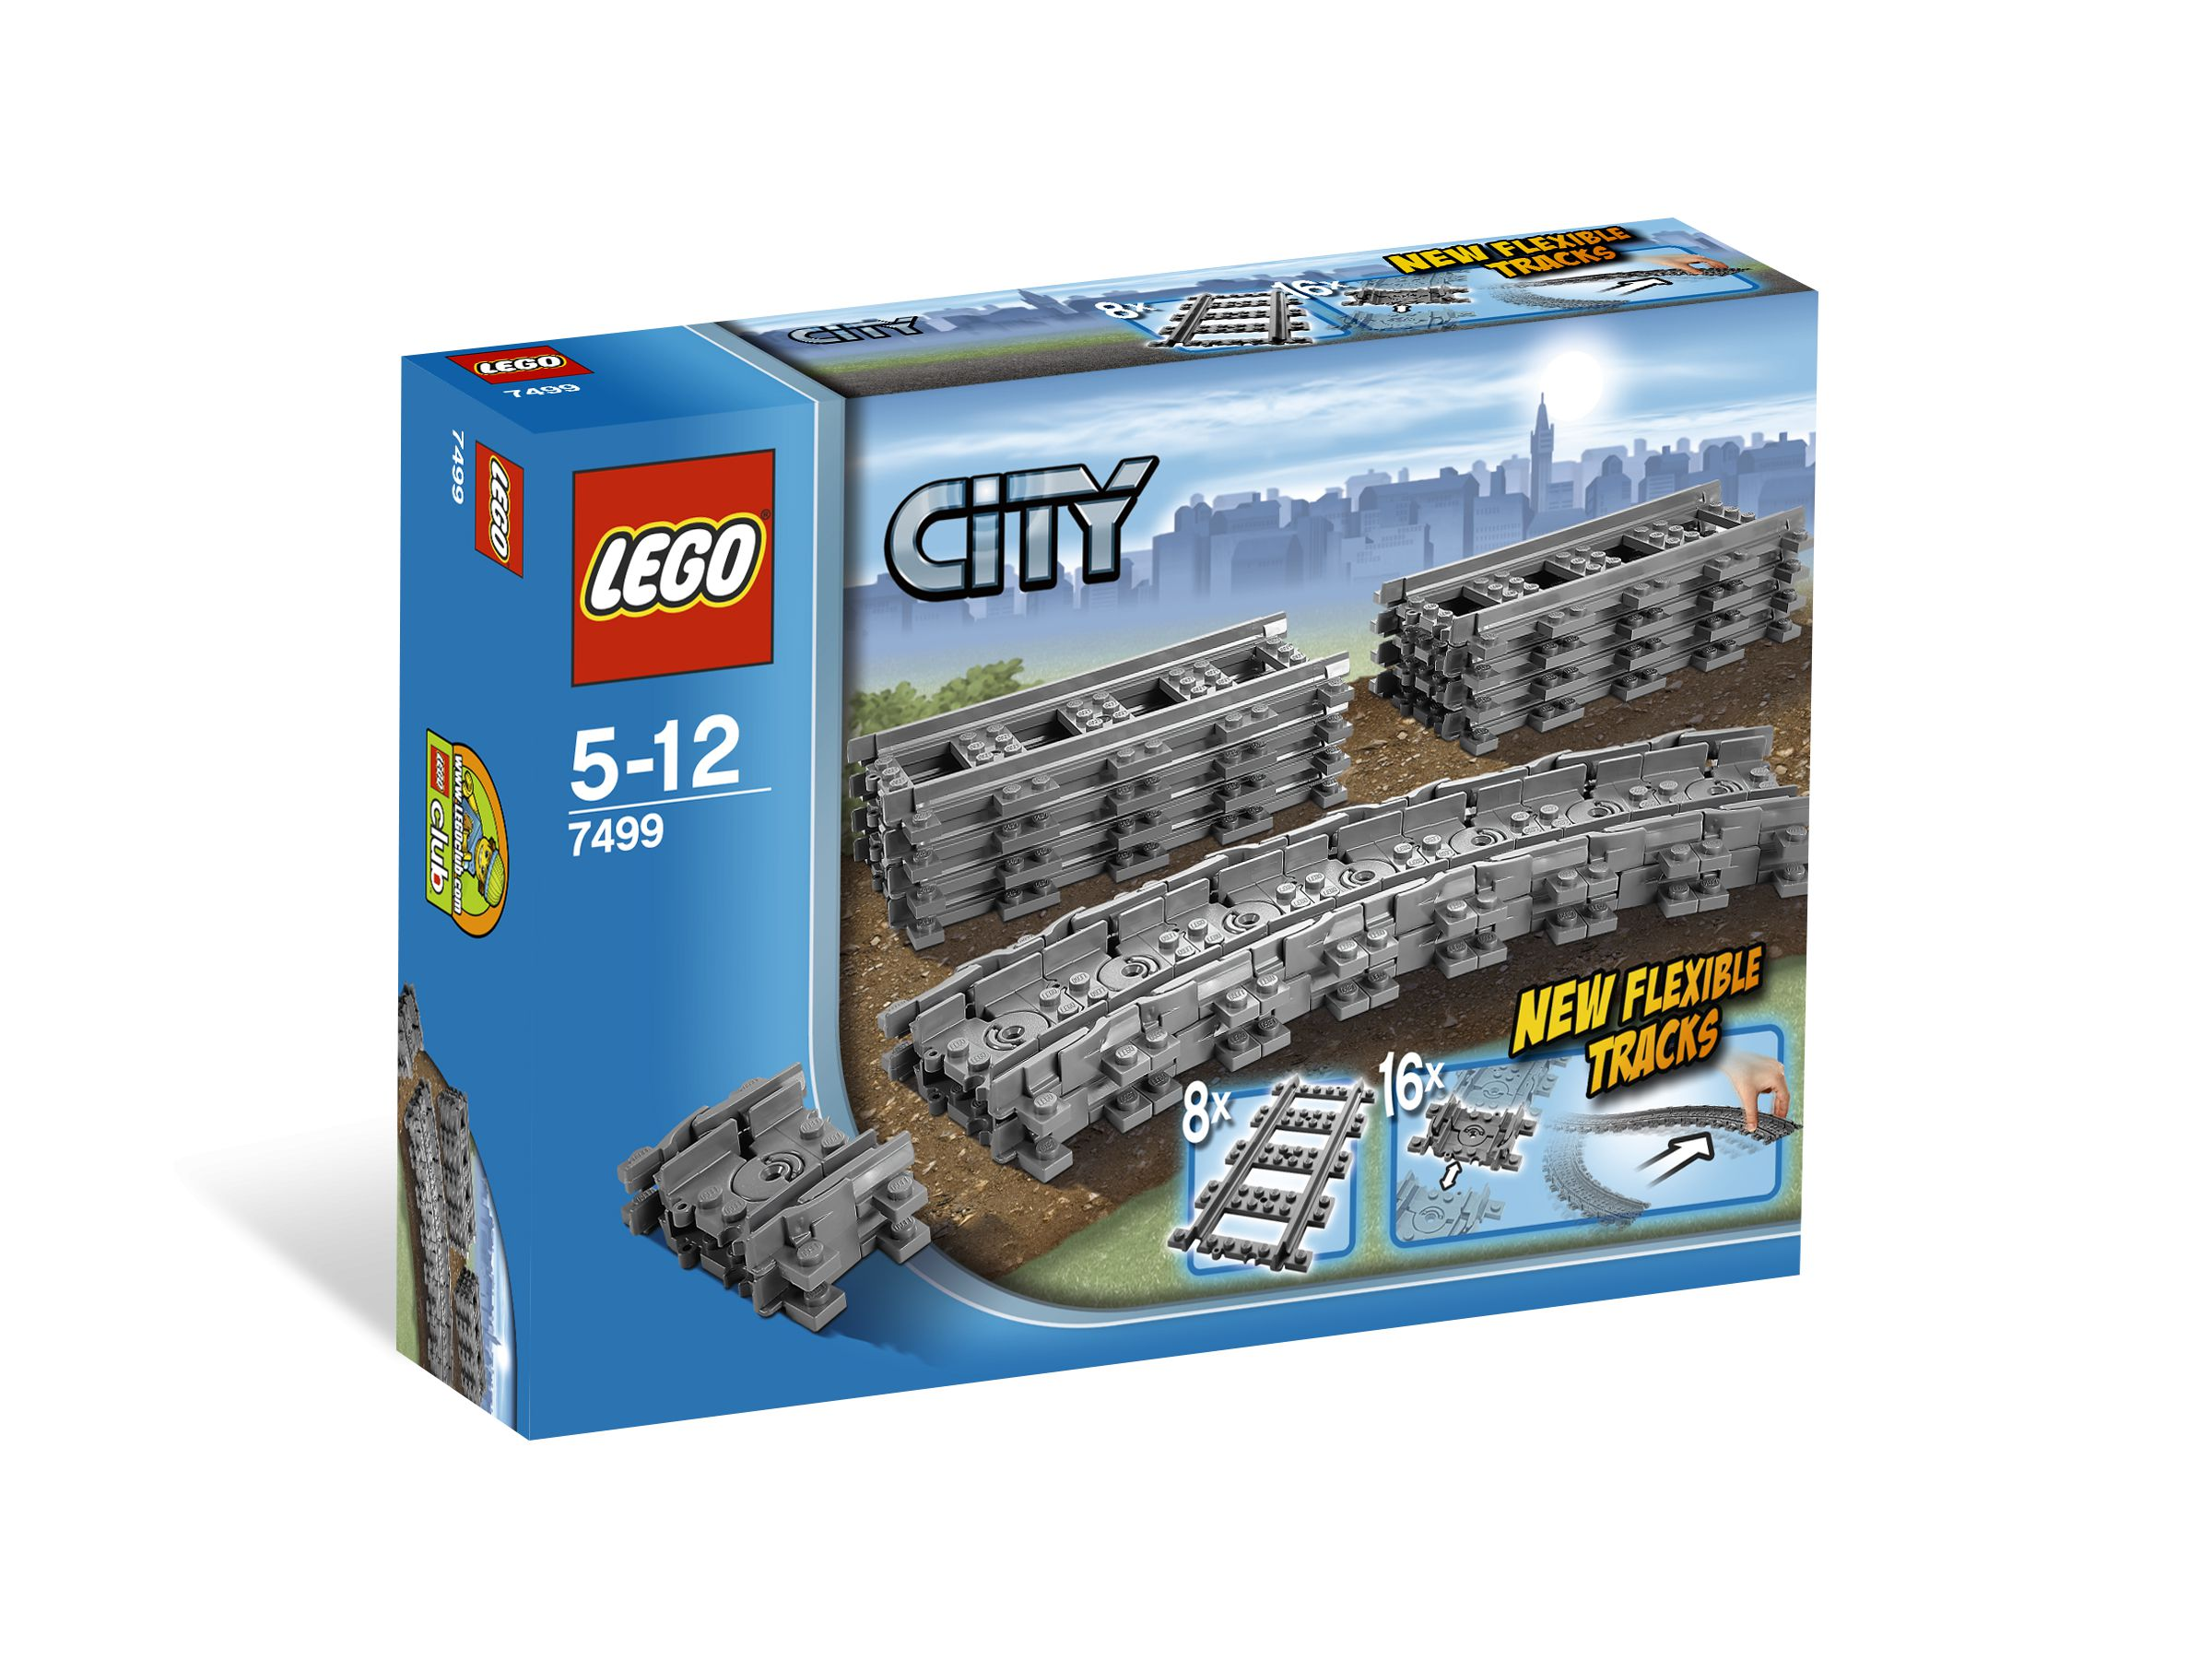 LEGO Bricks and More 7499 Flexible und gerade Schienen LEGO_7499_alt1.jpg